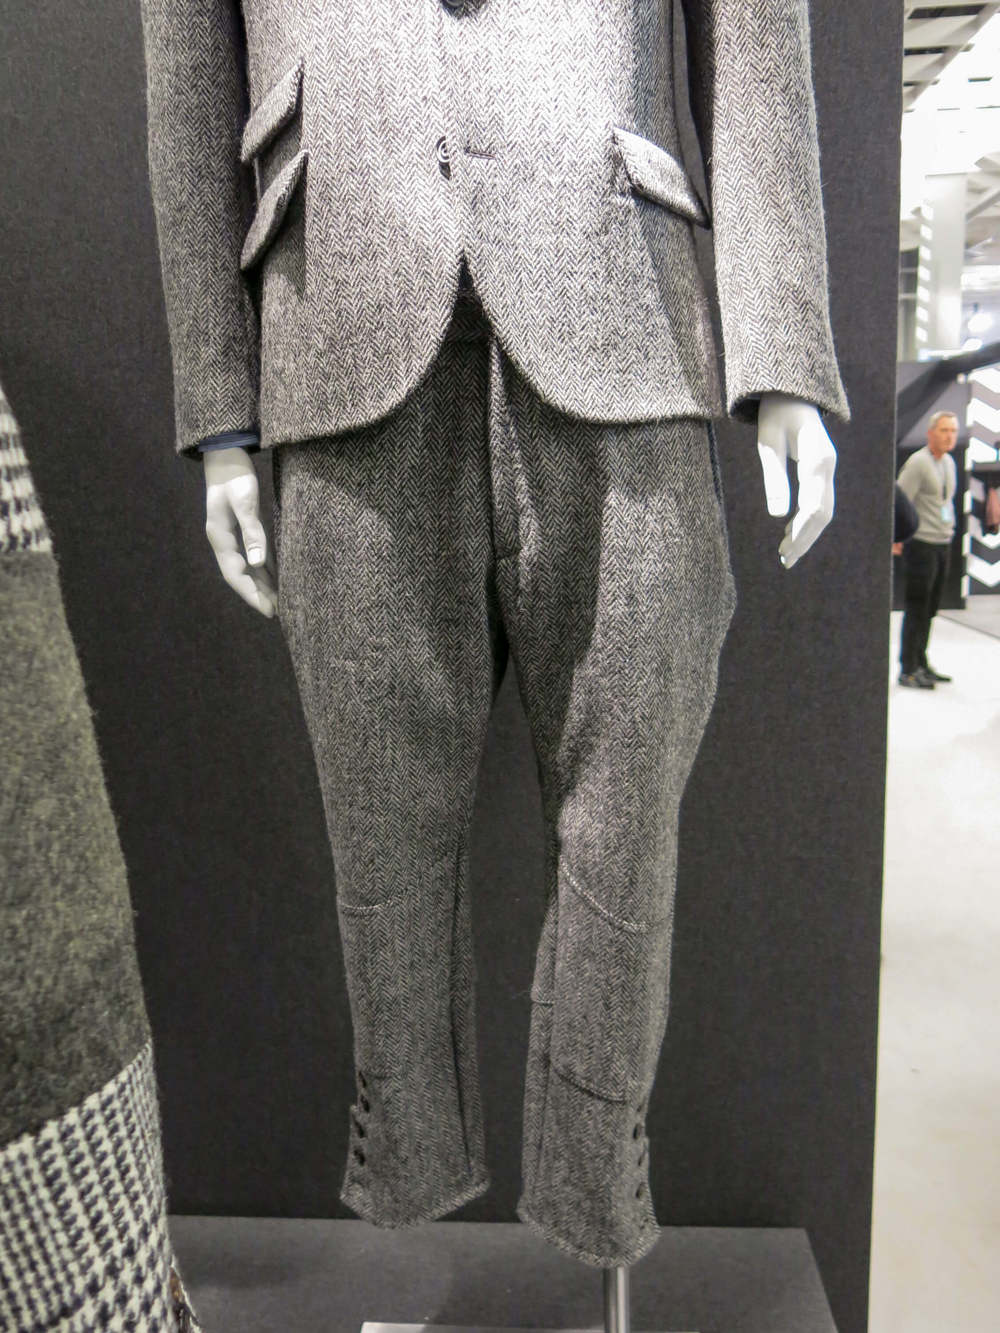 Theo Blix ®_Blog_Pitti Uomo FW 15_All rights reserved.